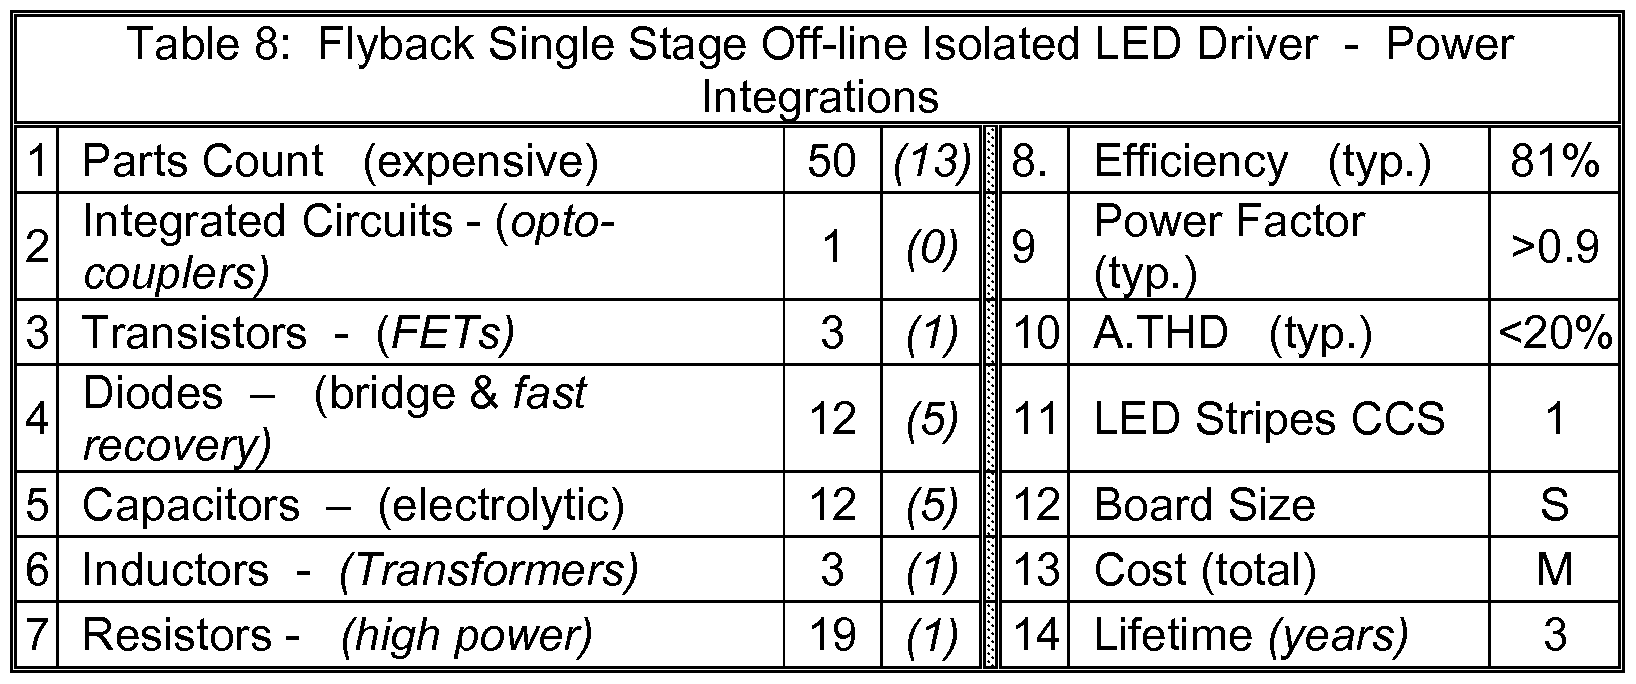 Wo2013090945a1 Near Unity Power Factor Long Life Low Cost Led Lamp Max16834 High Driver Figure Imgf000045 0001